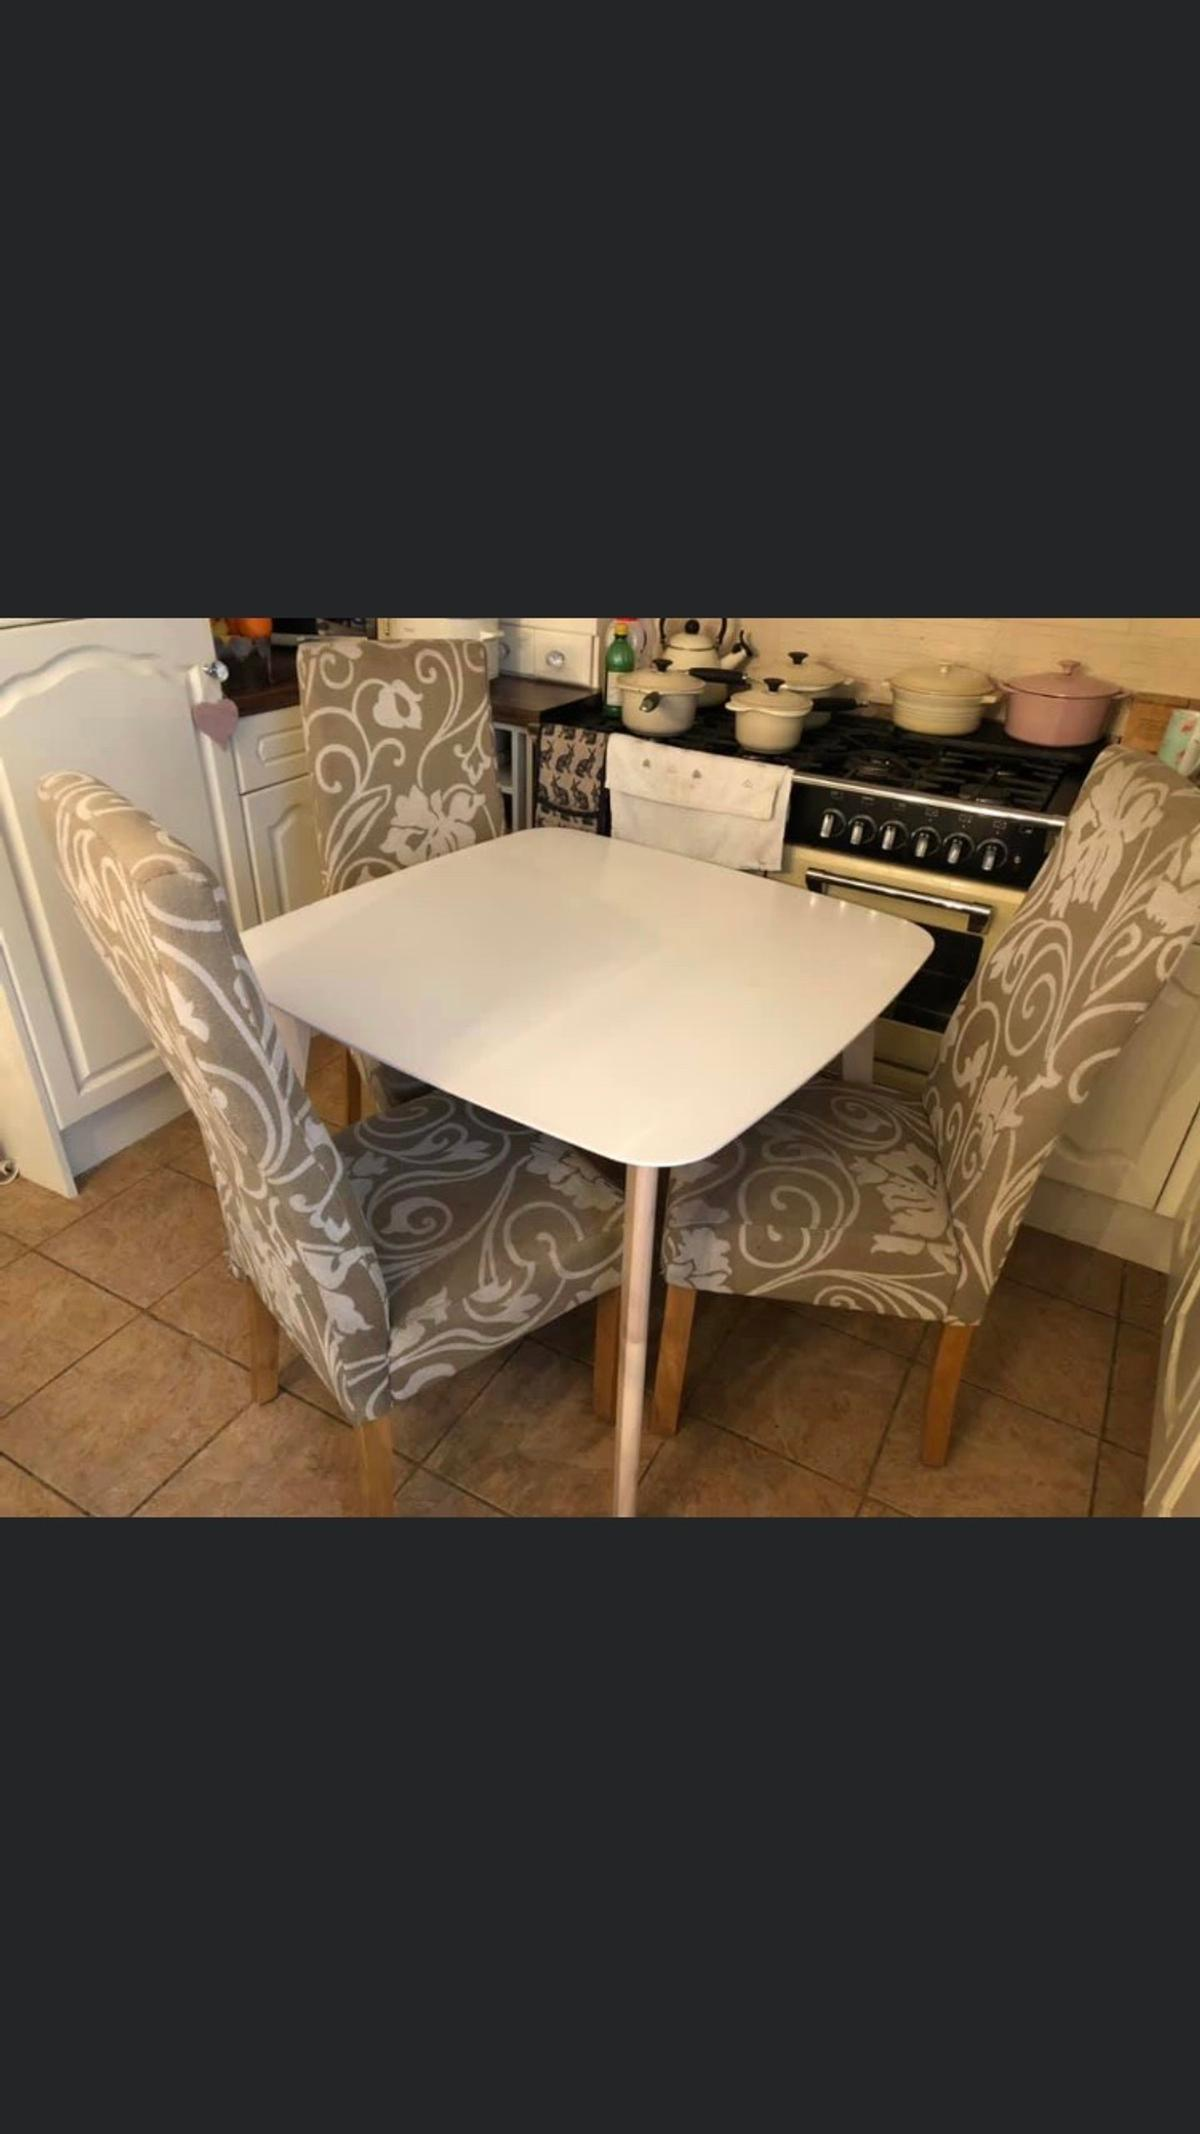 Lovely table by Julian Bowen in white with beech legs and three patterned chairs , measurements of the table are 90 cm by 90 cm, height 75 cm , perfect for kitchen or dining room